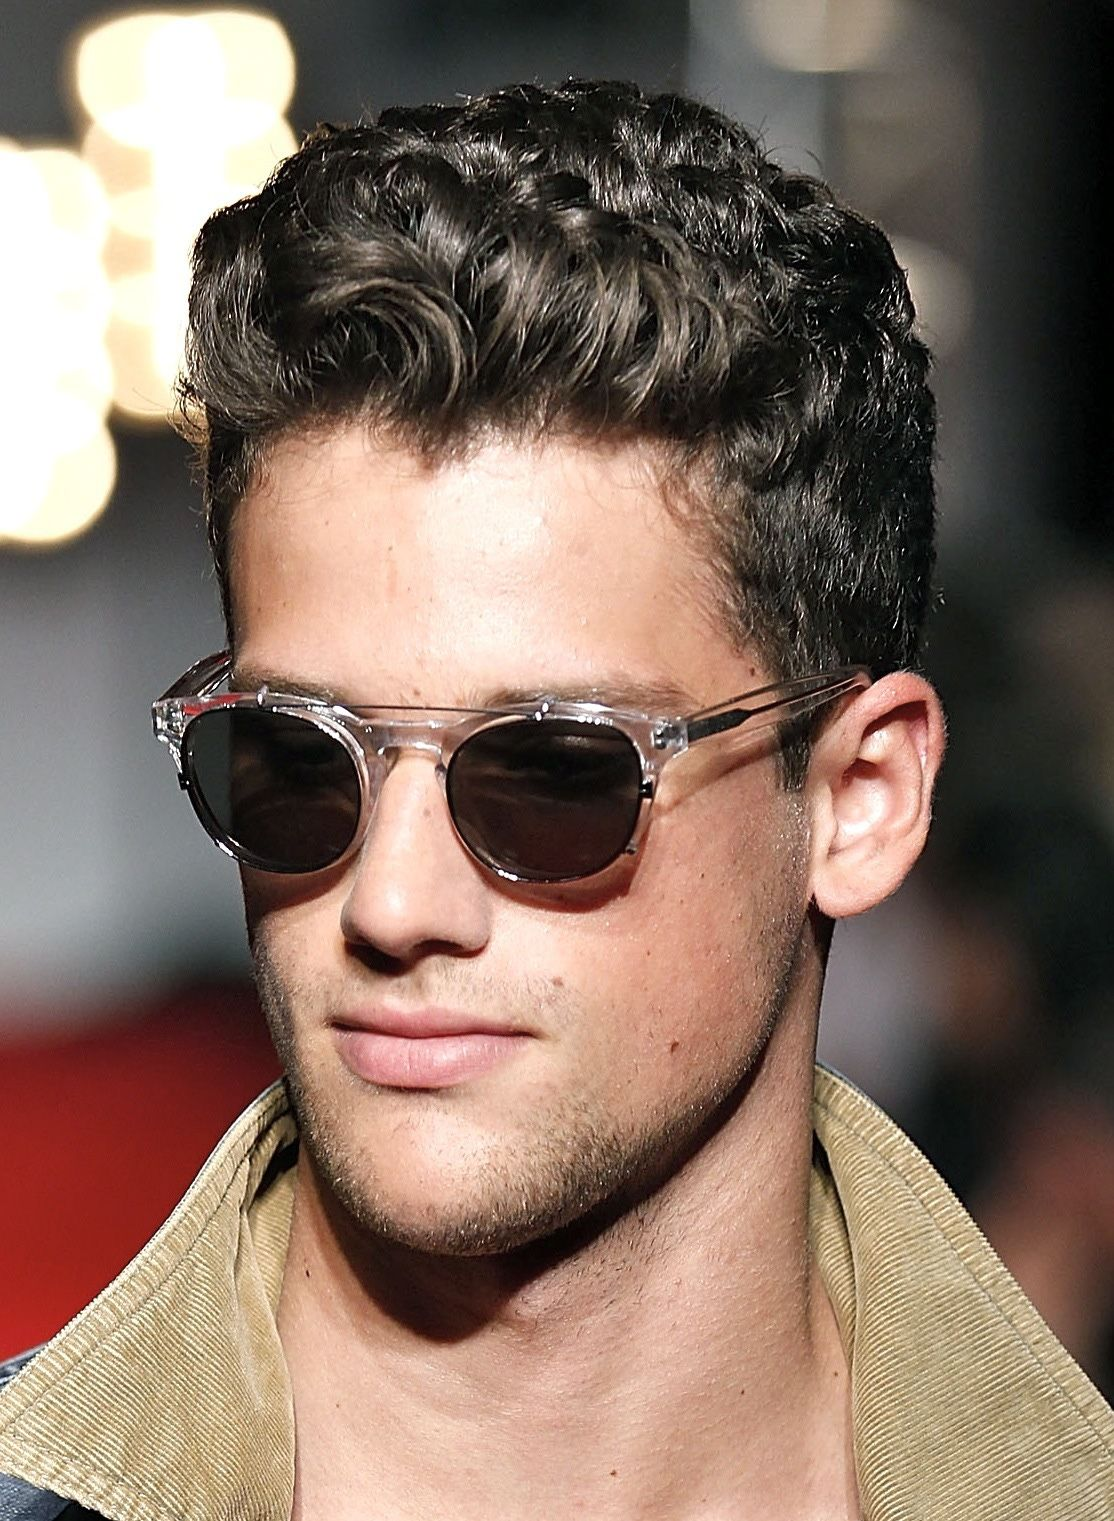 Short Curly Hairstyles For Men Men's Updos  Hair With Height  Hairstyle Men Curly Hairstyles And